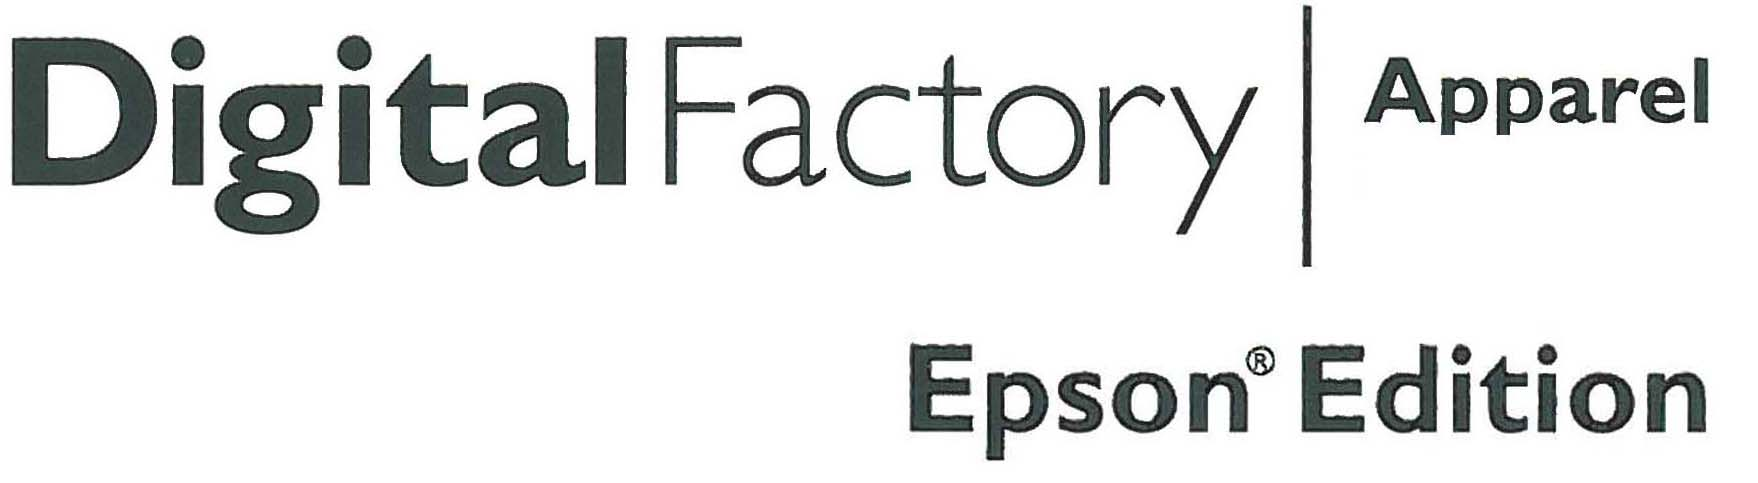 Digital Factory-Epson Edition